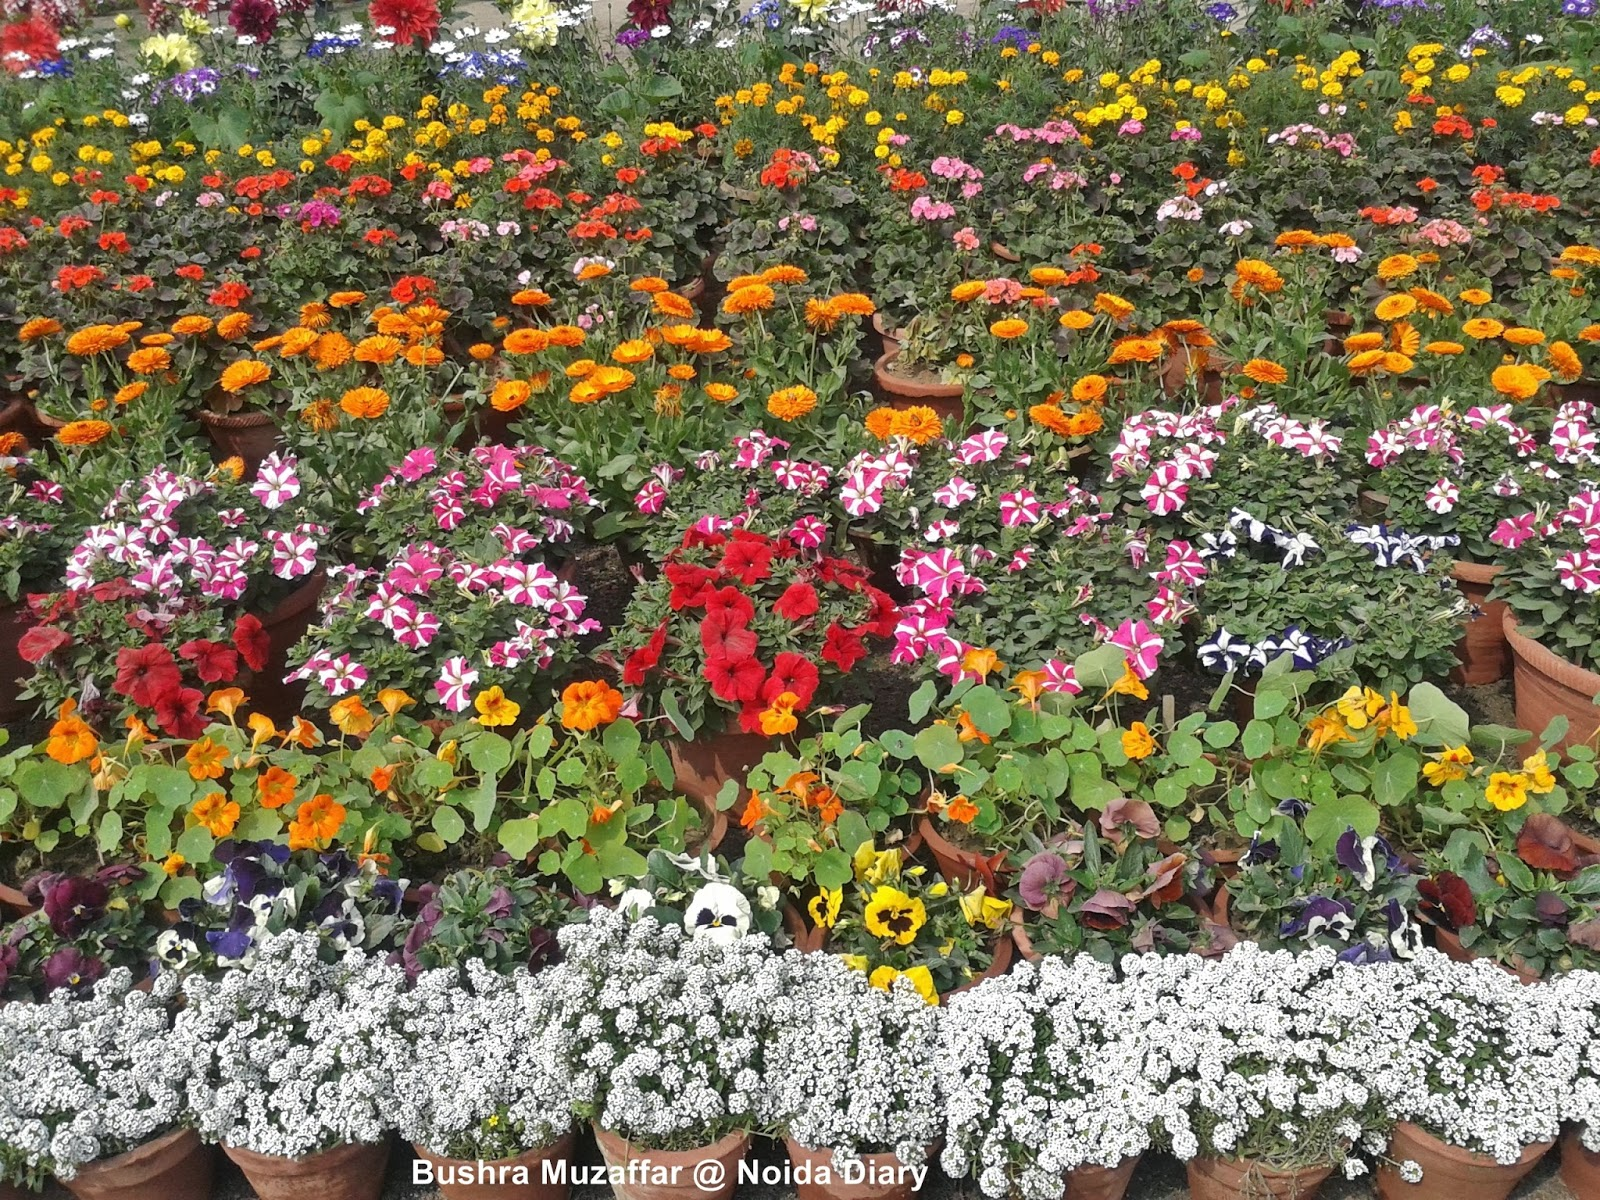 28th Noida Flower Show - 'Vasant Utsav' 2014 at Noida Stadium